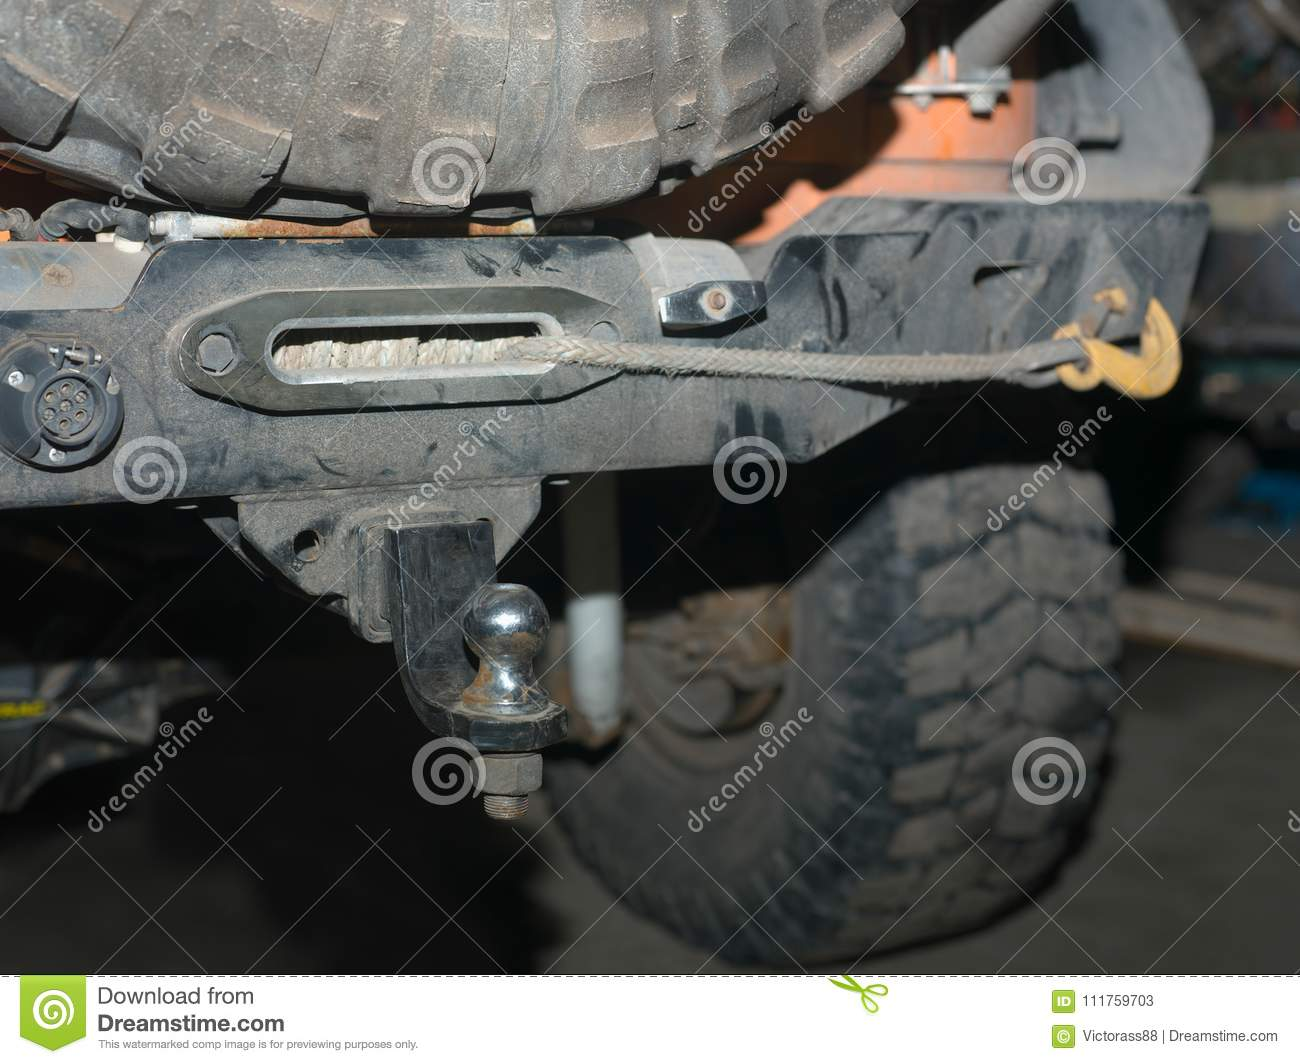 Hook up a tow bar